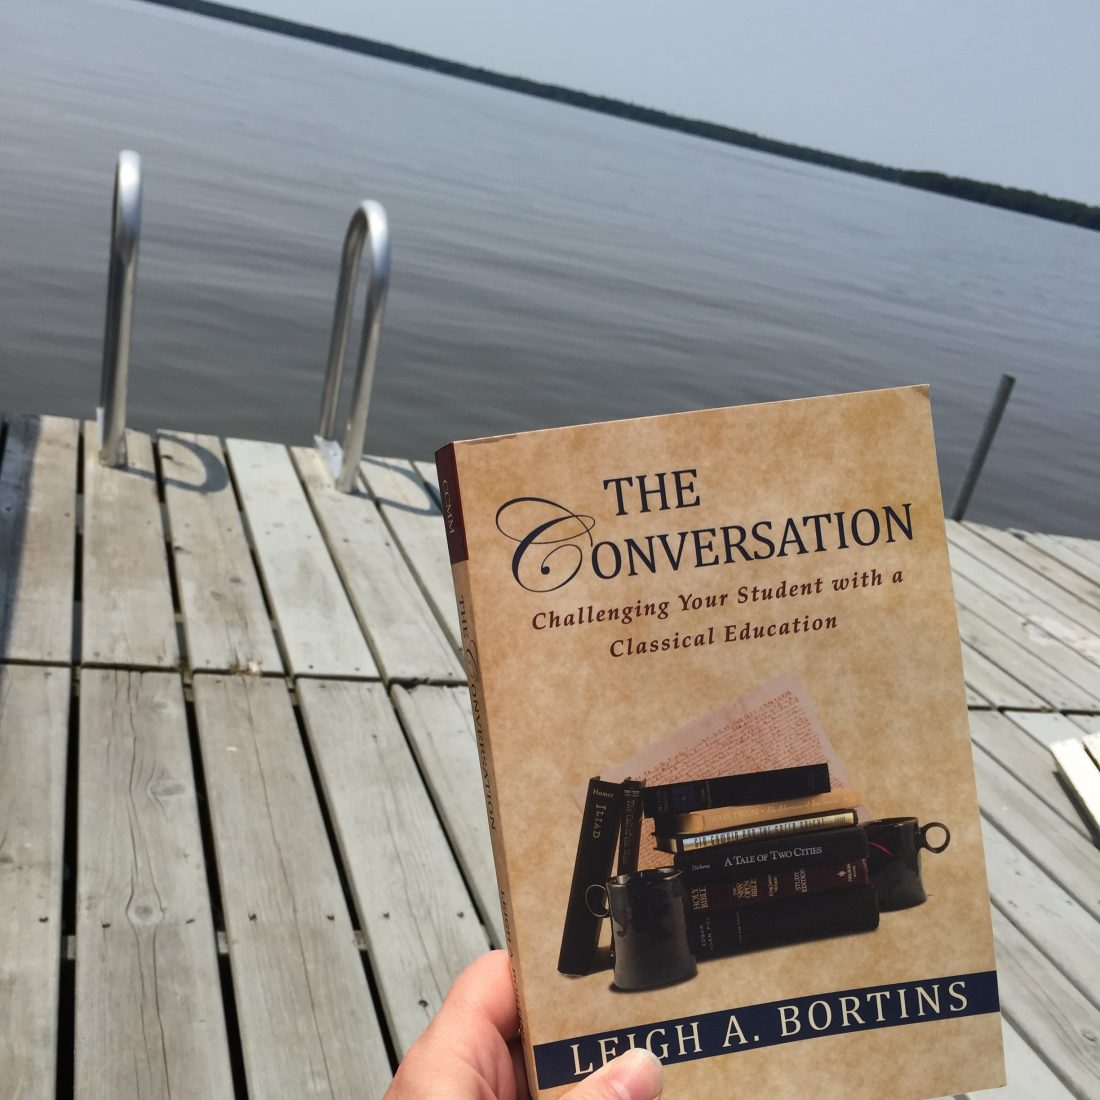 Book Review: The Conversation by Leigh A. Bortins